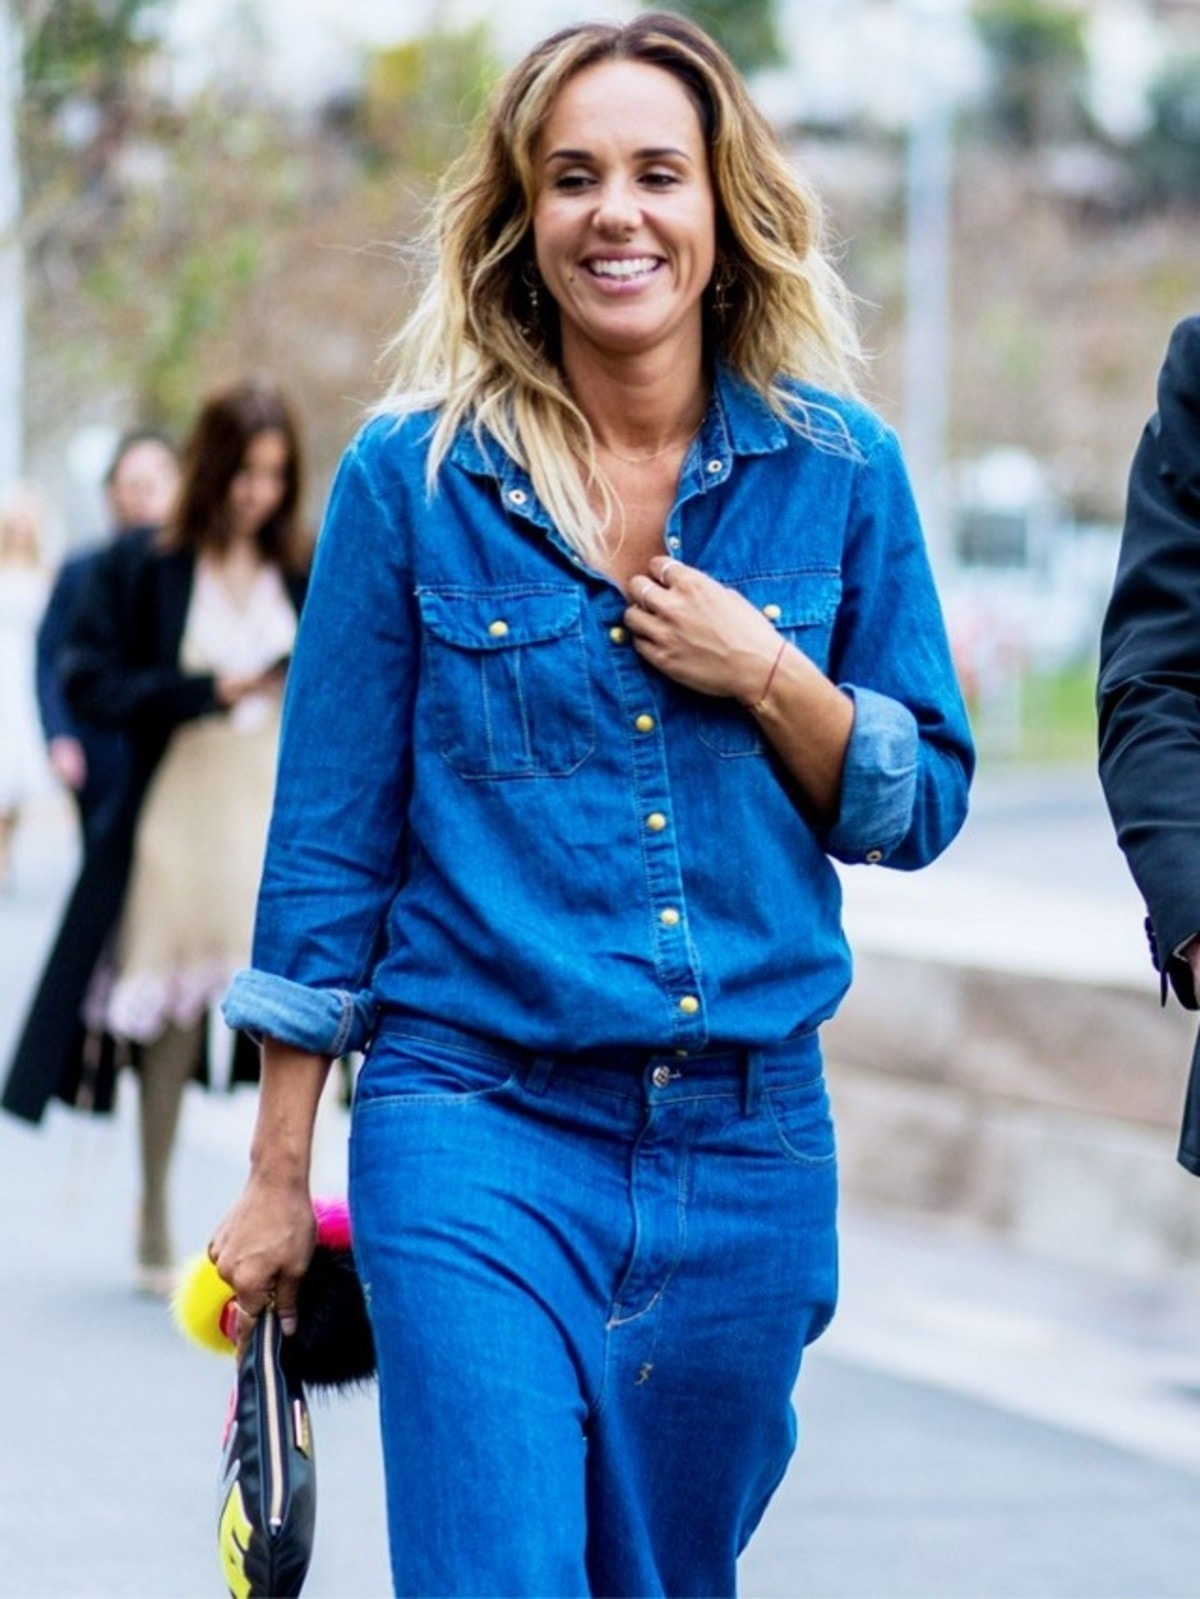 how-to-wear-a-denim-shirt-now-and-forever-1856680-1470161084.640x0c